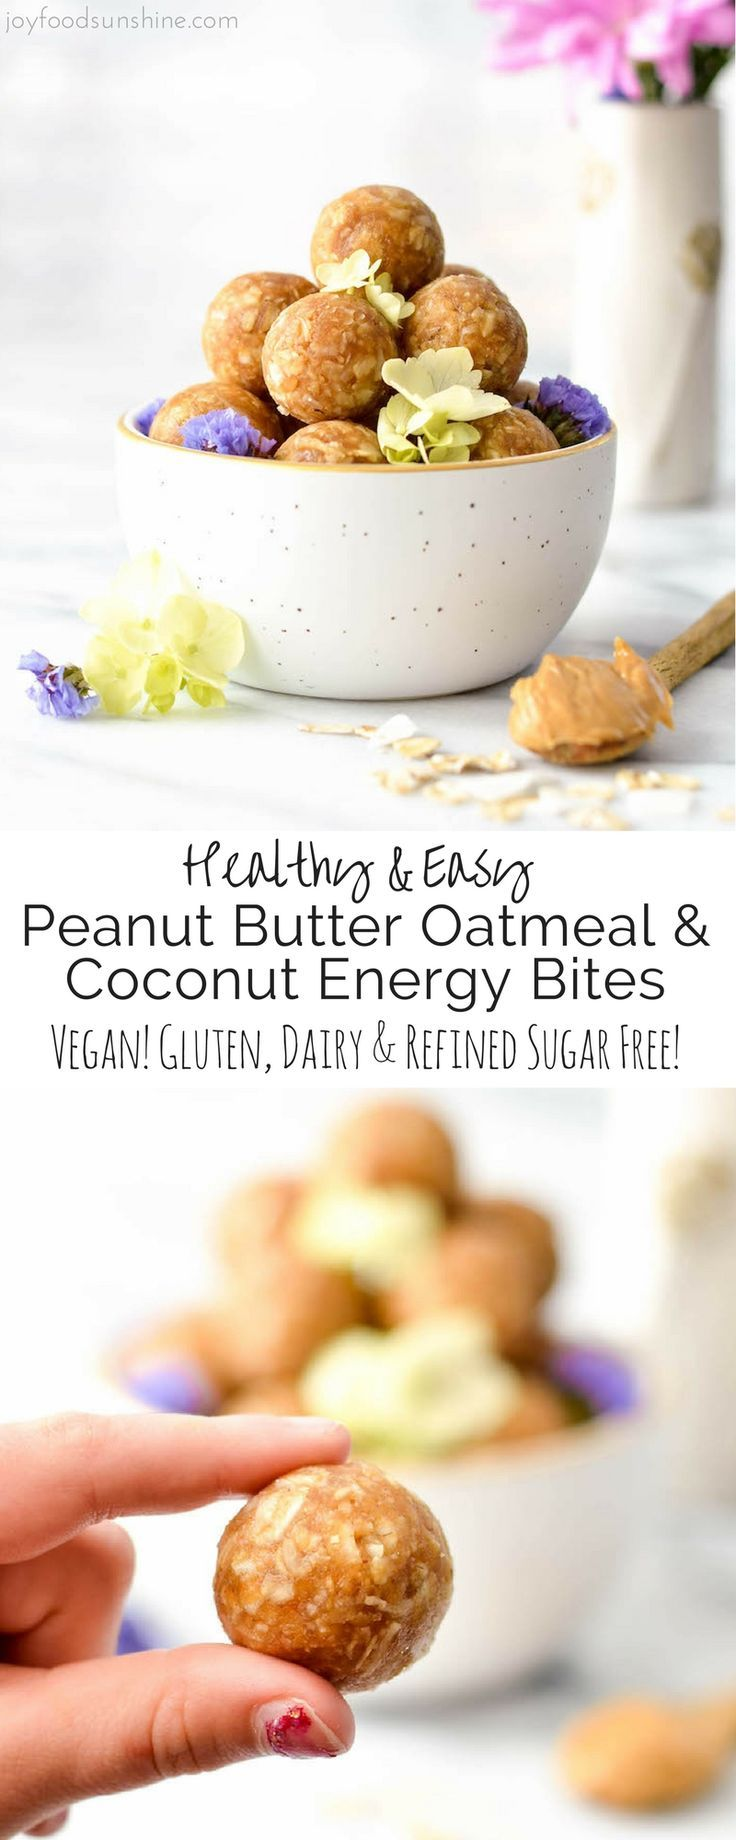 This Peanut Butter Oatmeal & Coconut Energy Bites recipe is an easy, healthy snack! It only takes 8 ingredients and 5 minutes to make! Gluten-free, dairy-free, refined sugar free and vegan-friendly!